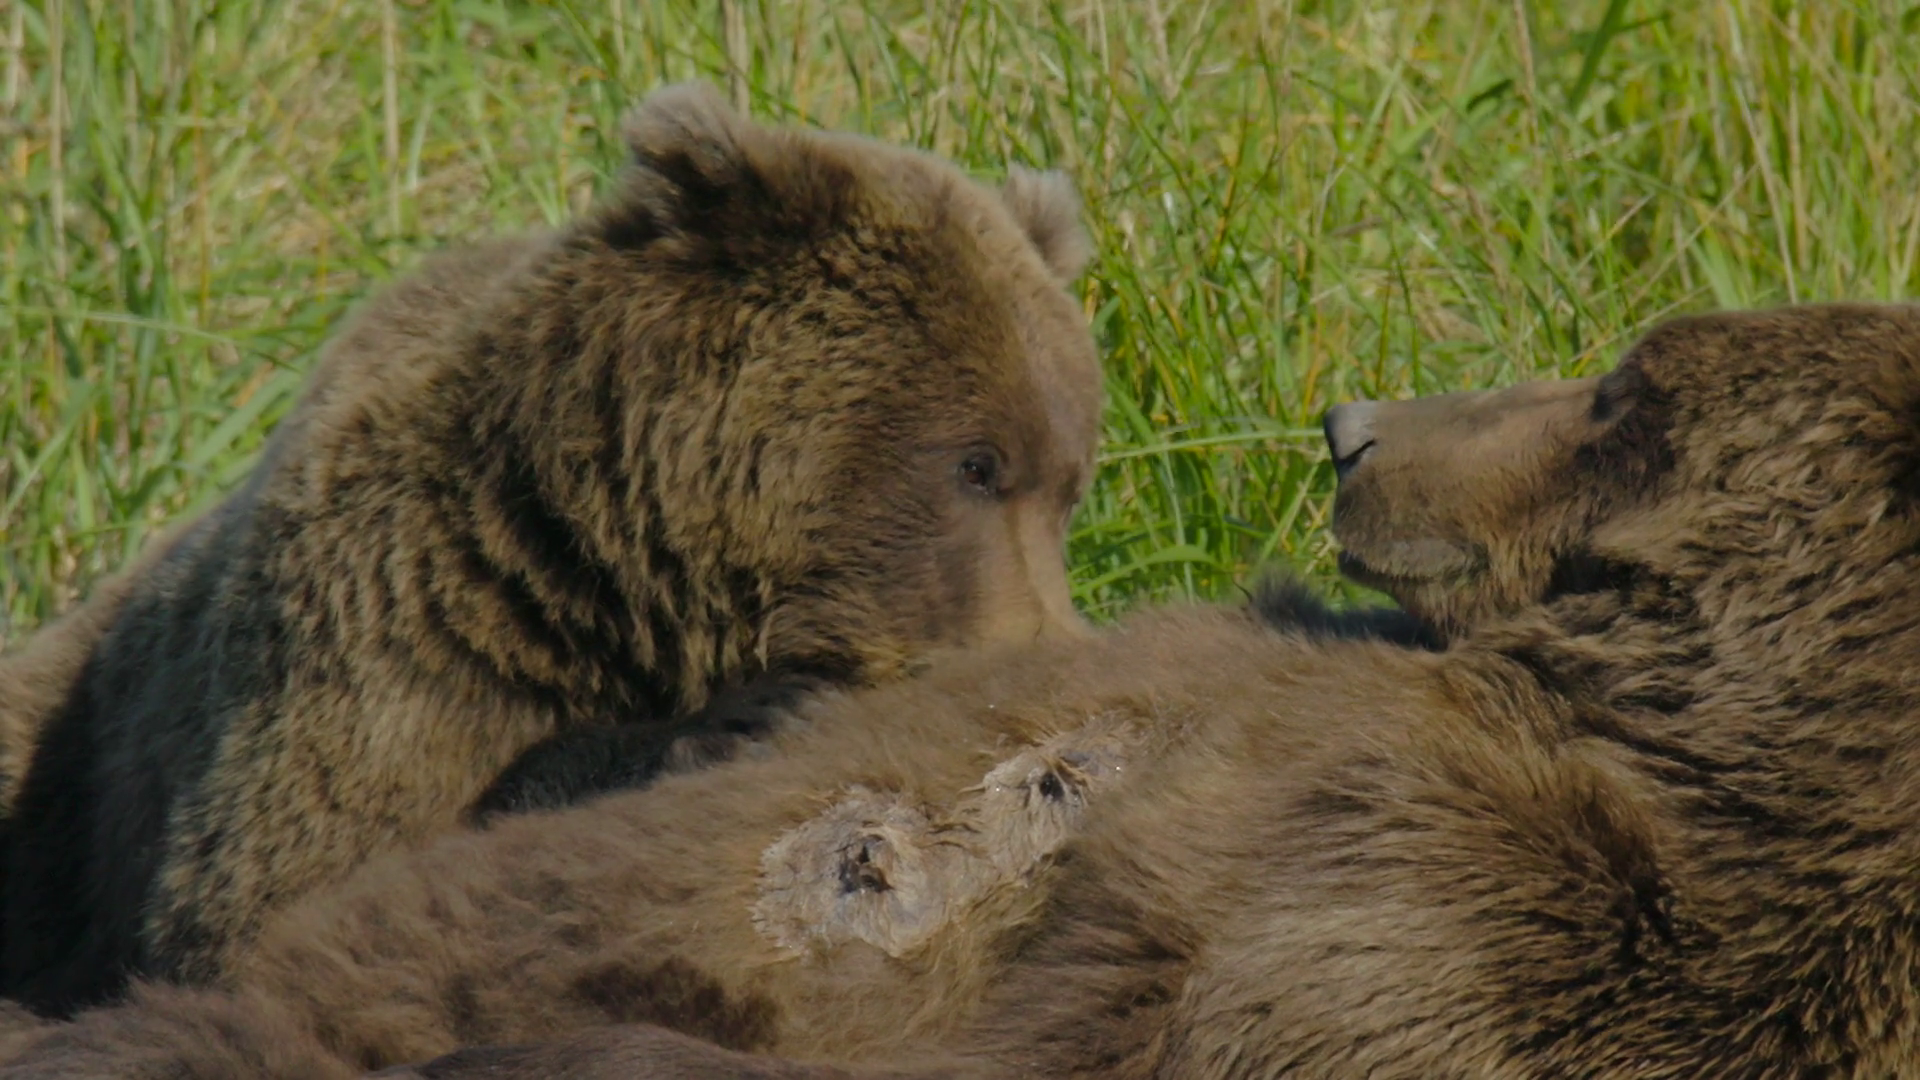 HD Grizzly Bear Cub Nursing with Milk on its Face Stock Video Footage -  VideoBlocks - Bear Face PNG HD